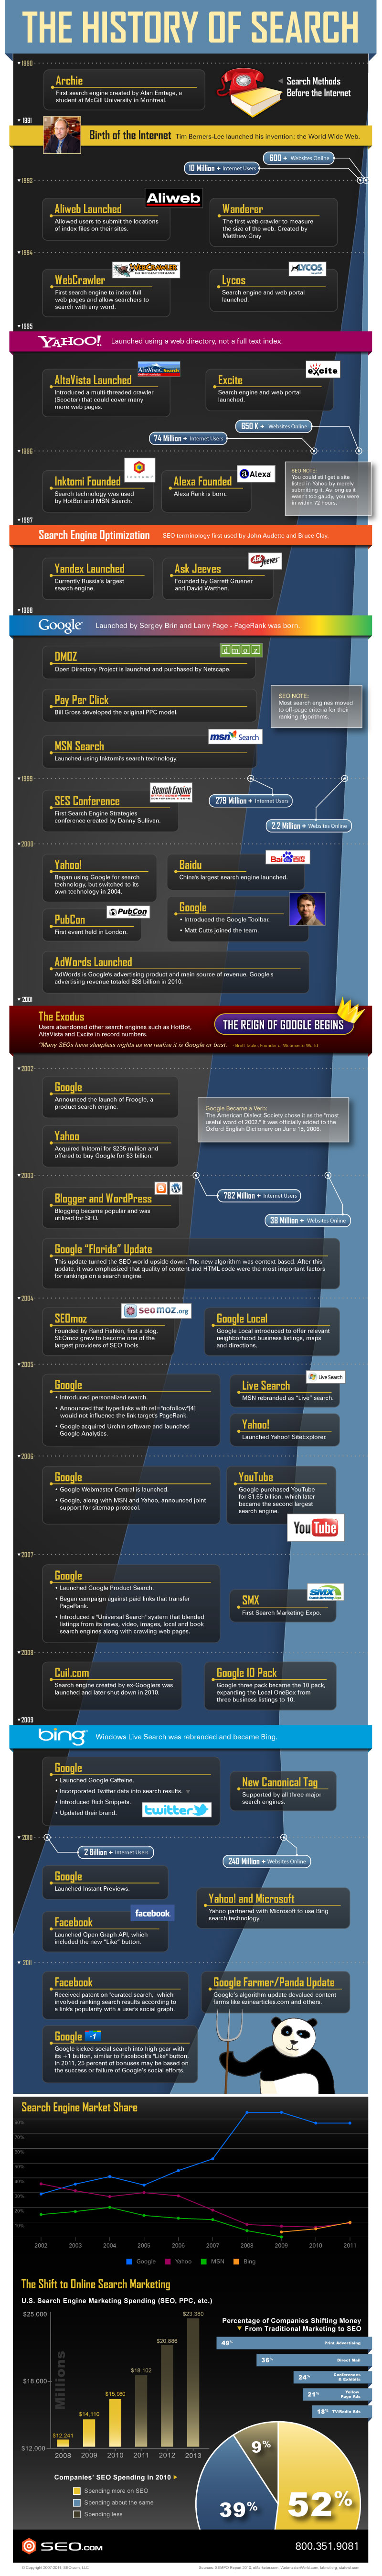 Search Engine History Infographic